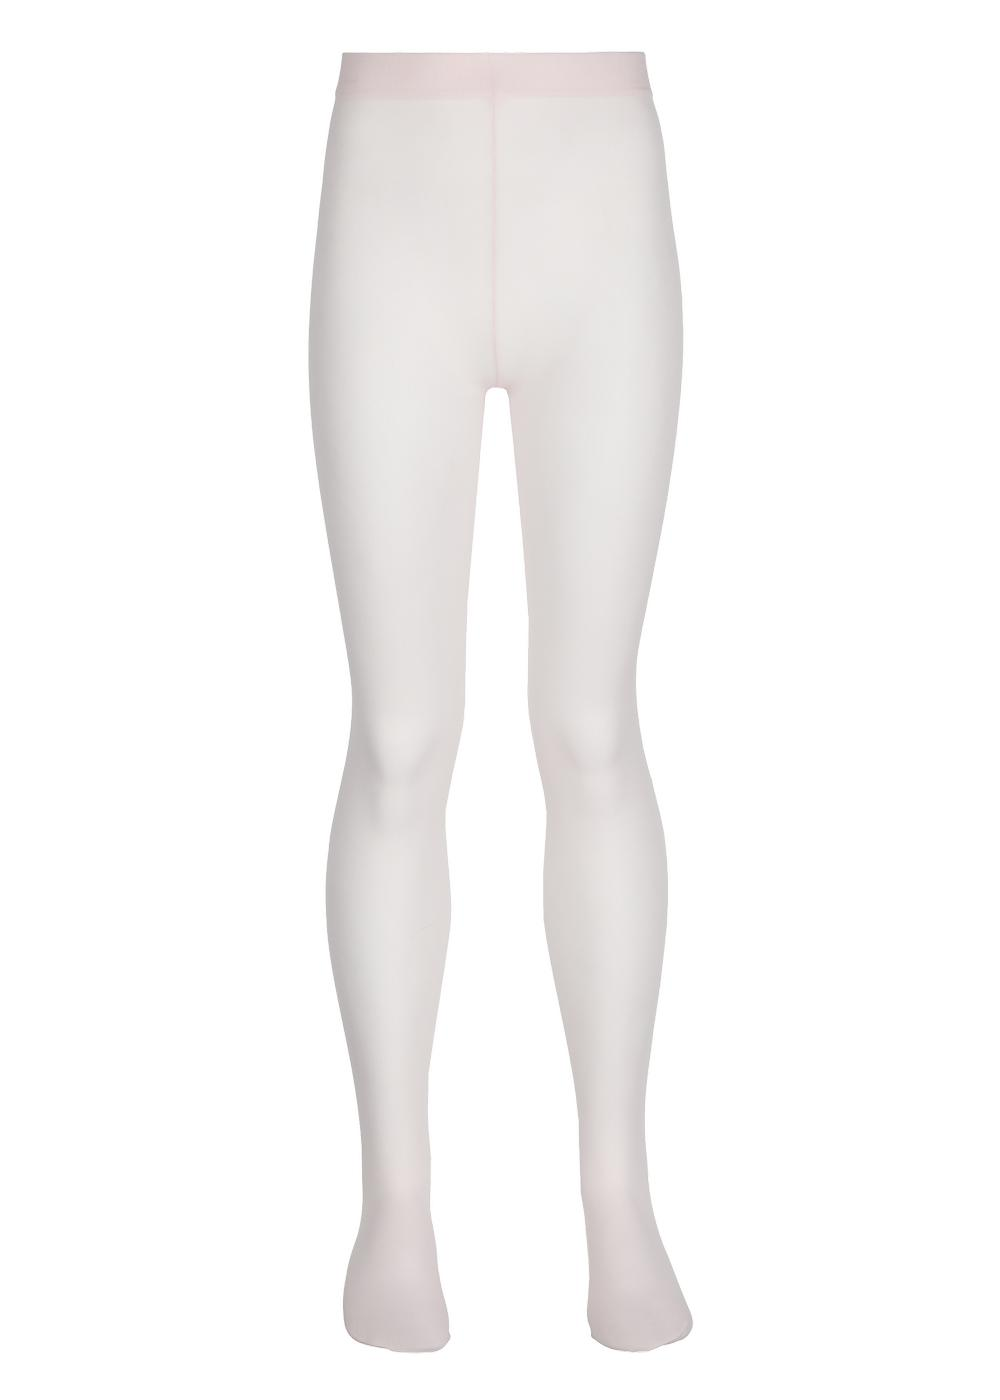 Sheer patterned girls' tights